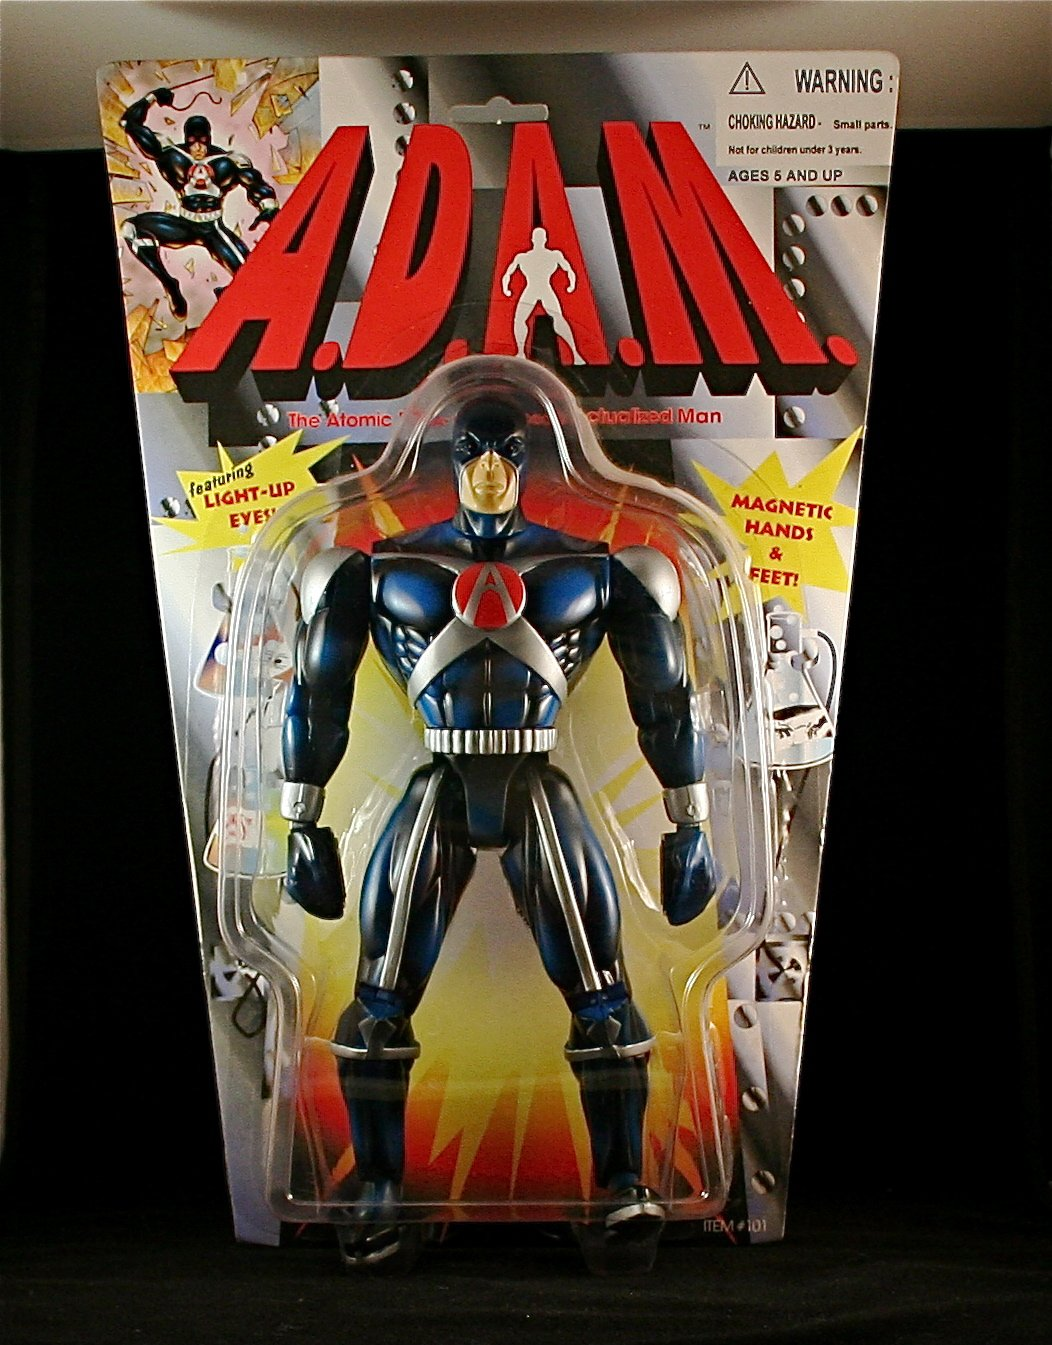 Actualized Man Super Poseable 9/½ Inch Action Figure with Magnetic Hands /& Feet Enhanced The Atomic DNA A.D.A.M